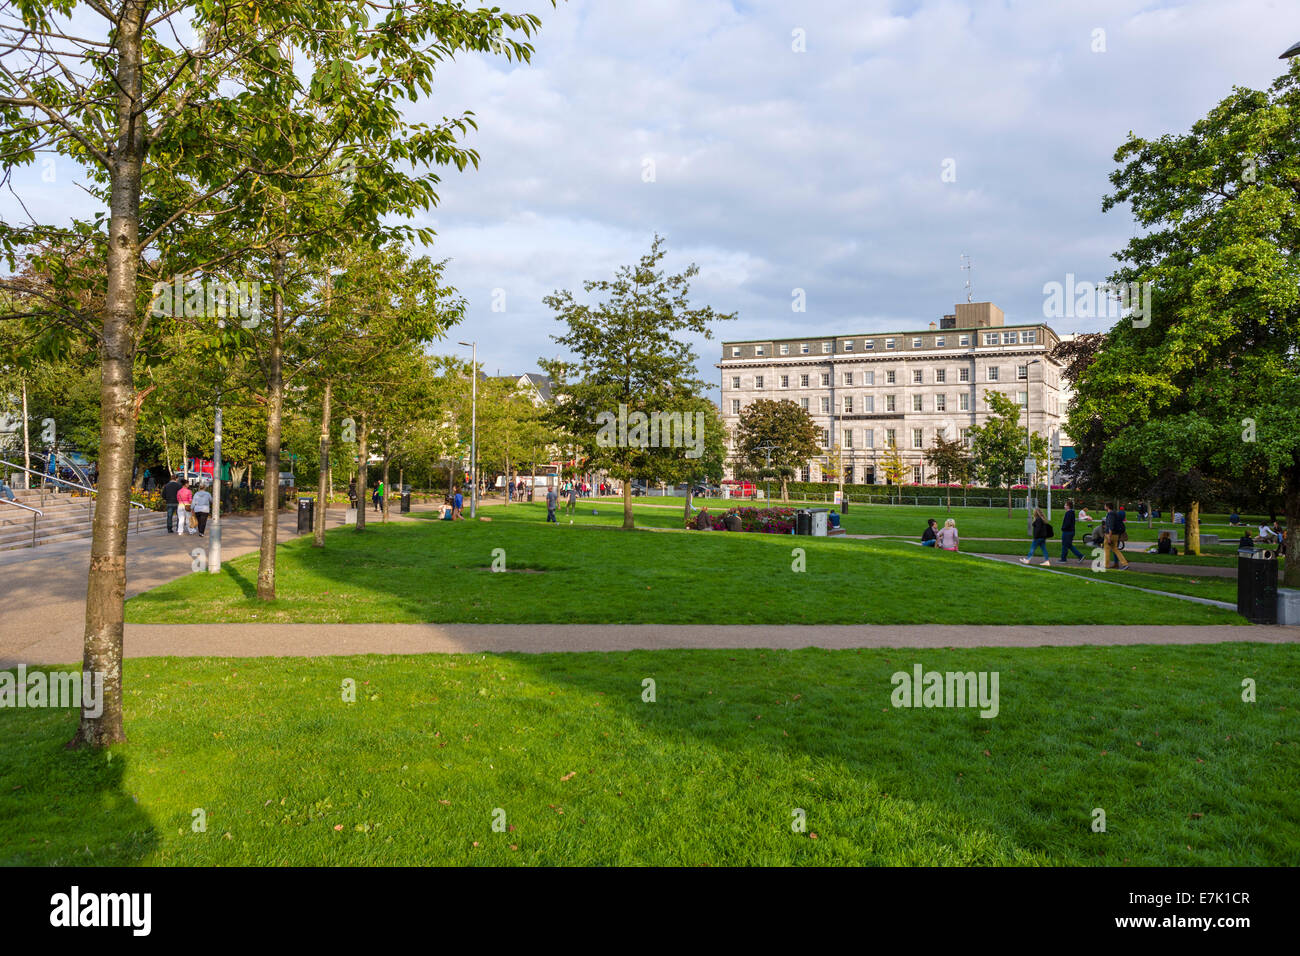 Early evening in Eyre Square looking towards the Hotel Meyrick, Galway City, County Galway, Republic of Ireland - Stock Image